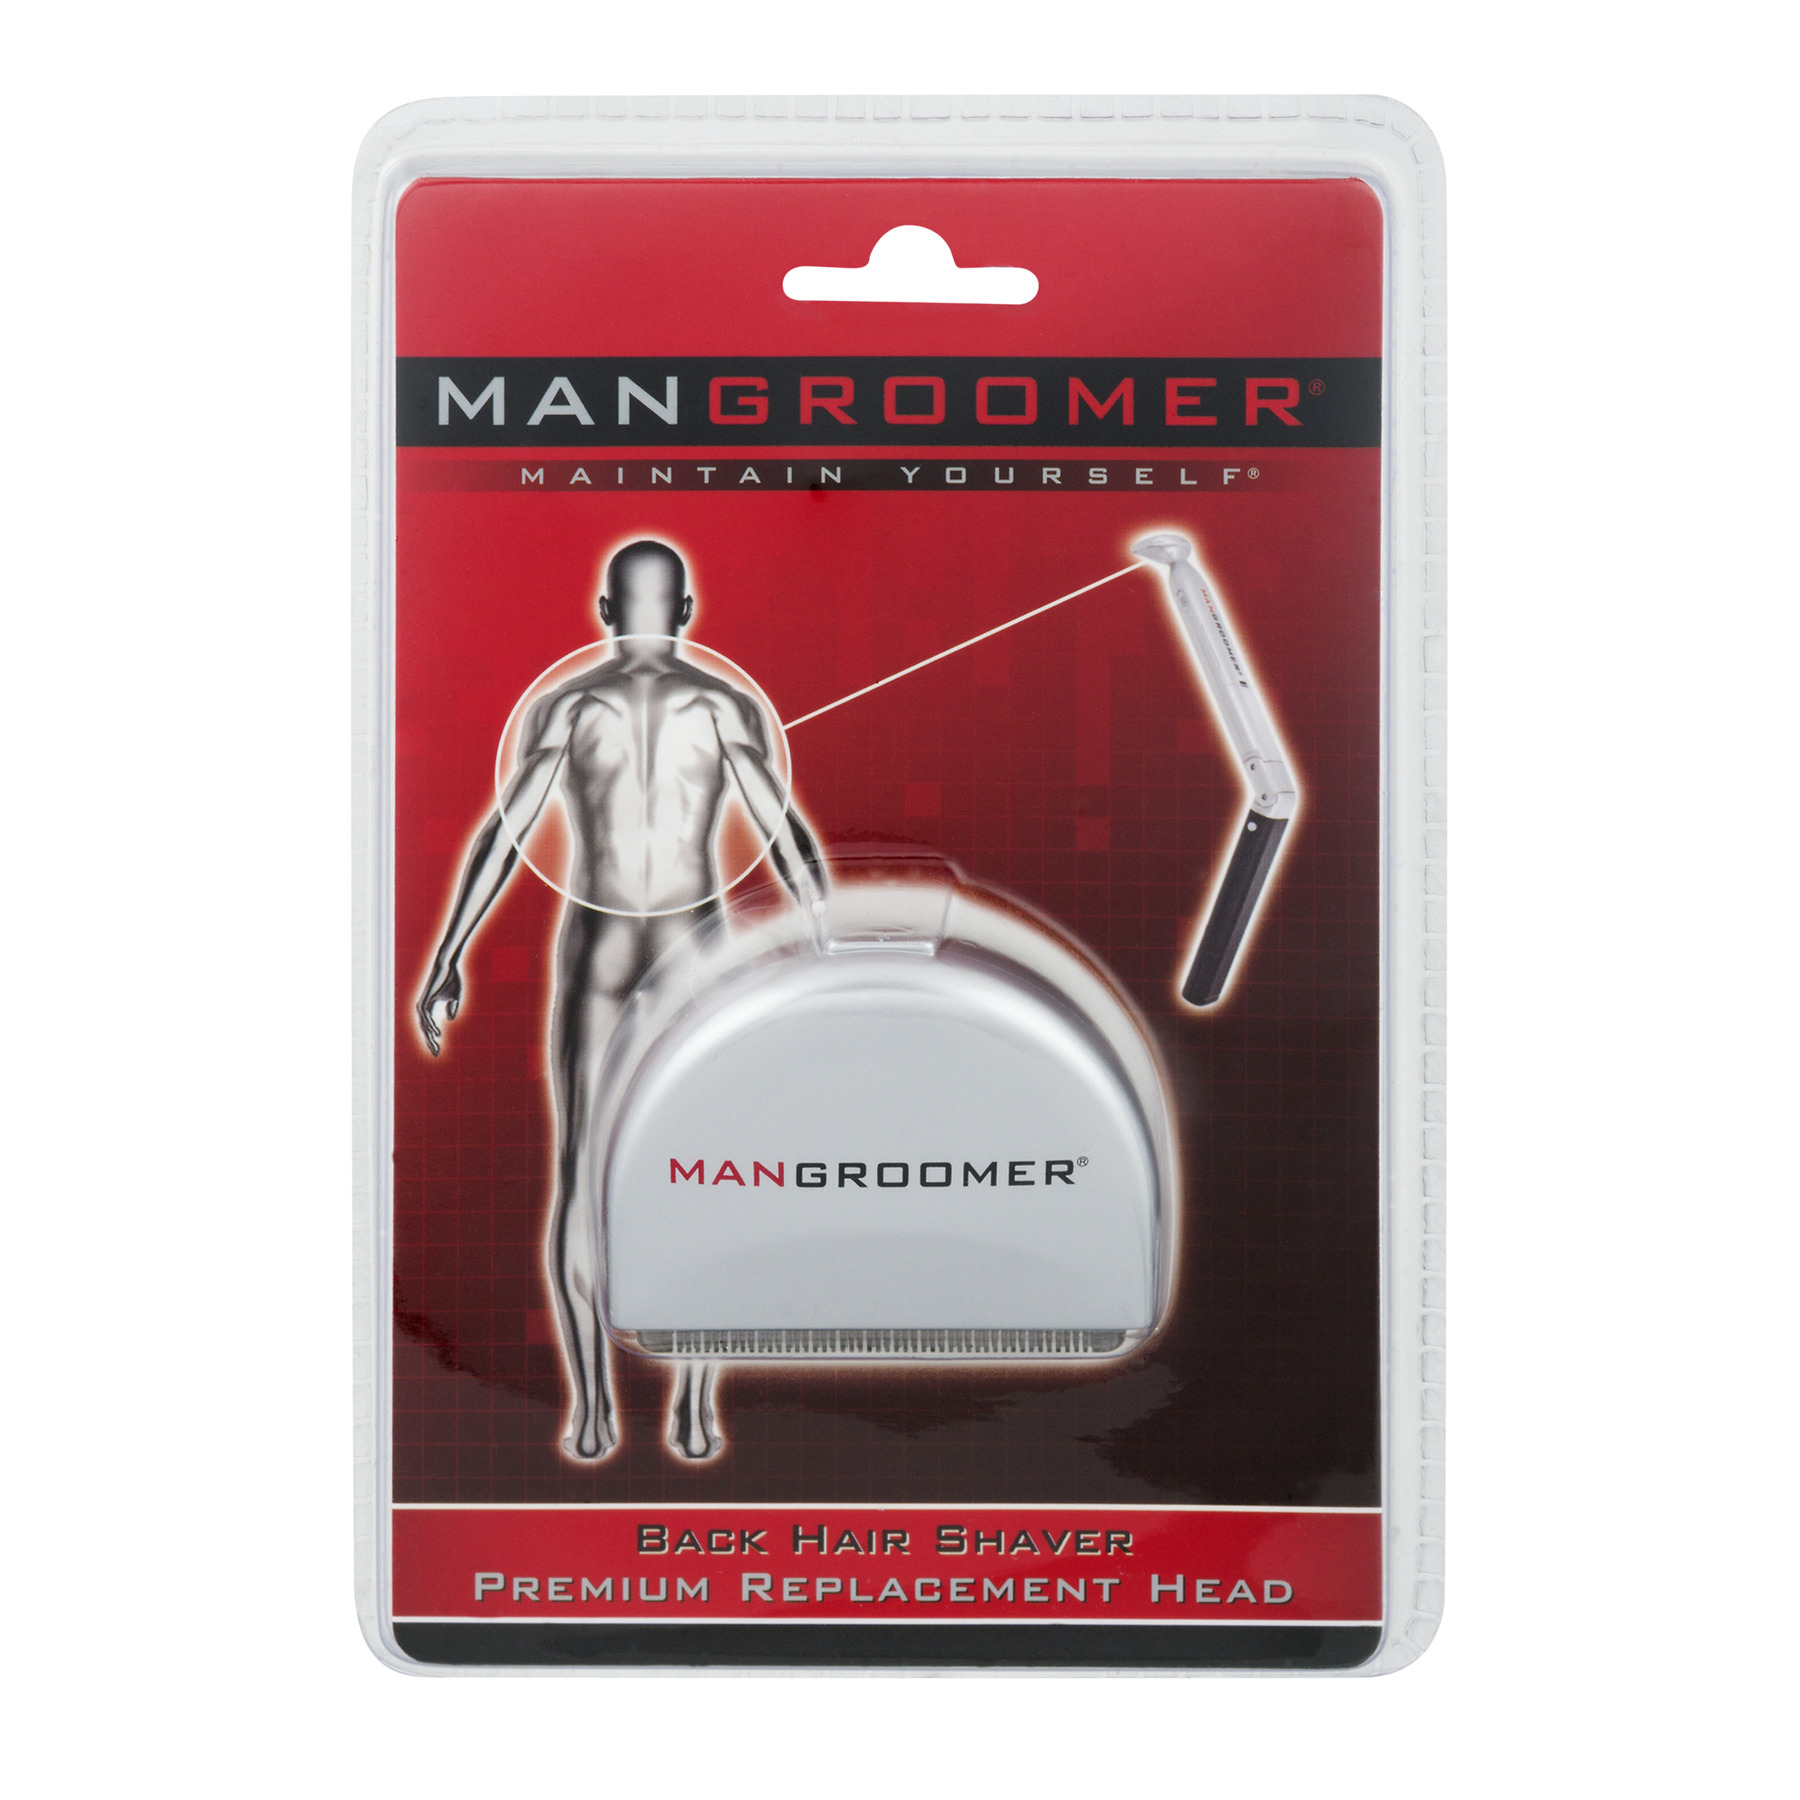 Man Groomer Back Hair Shaver Replacement Head, 1.0 CT